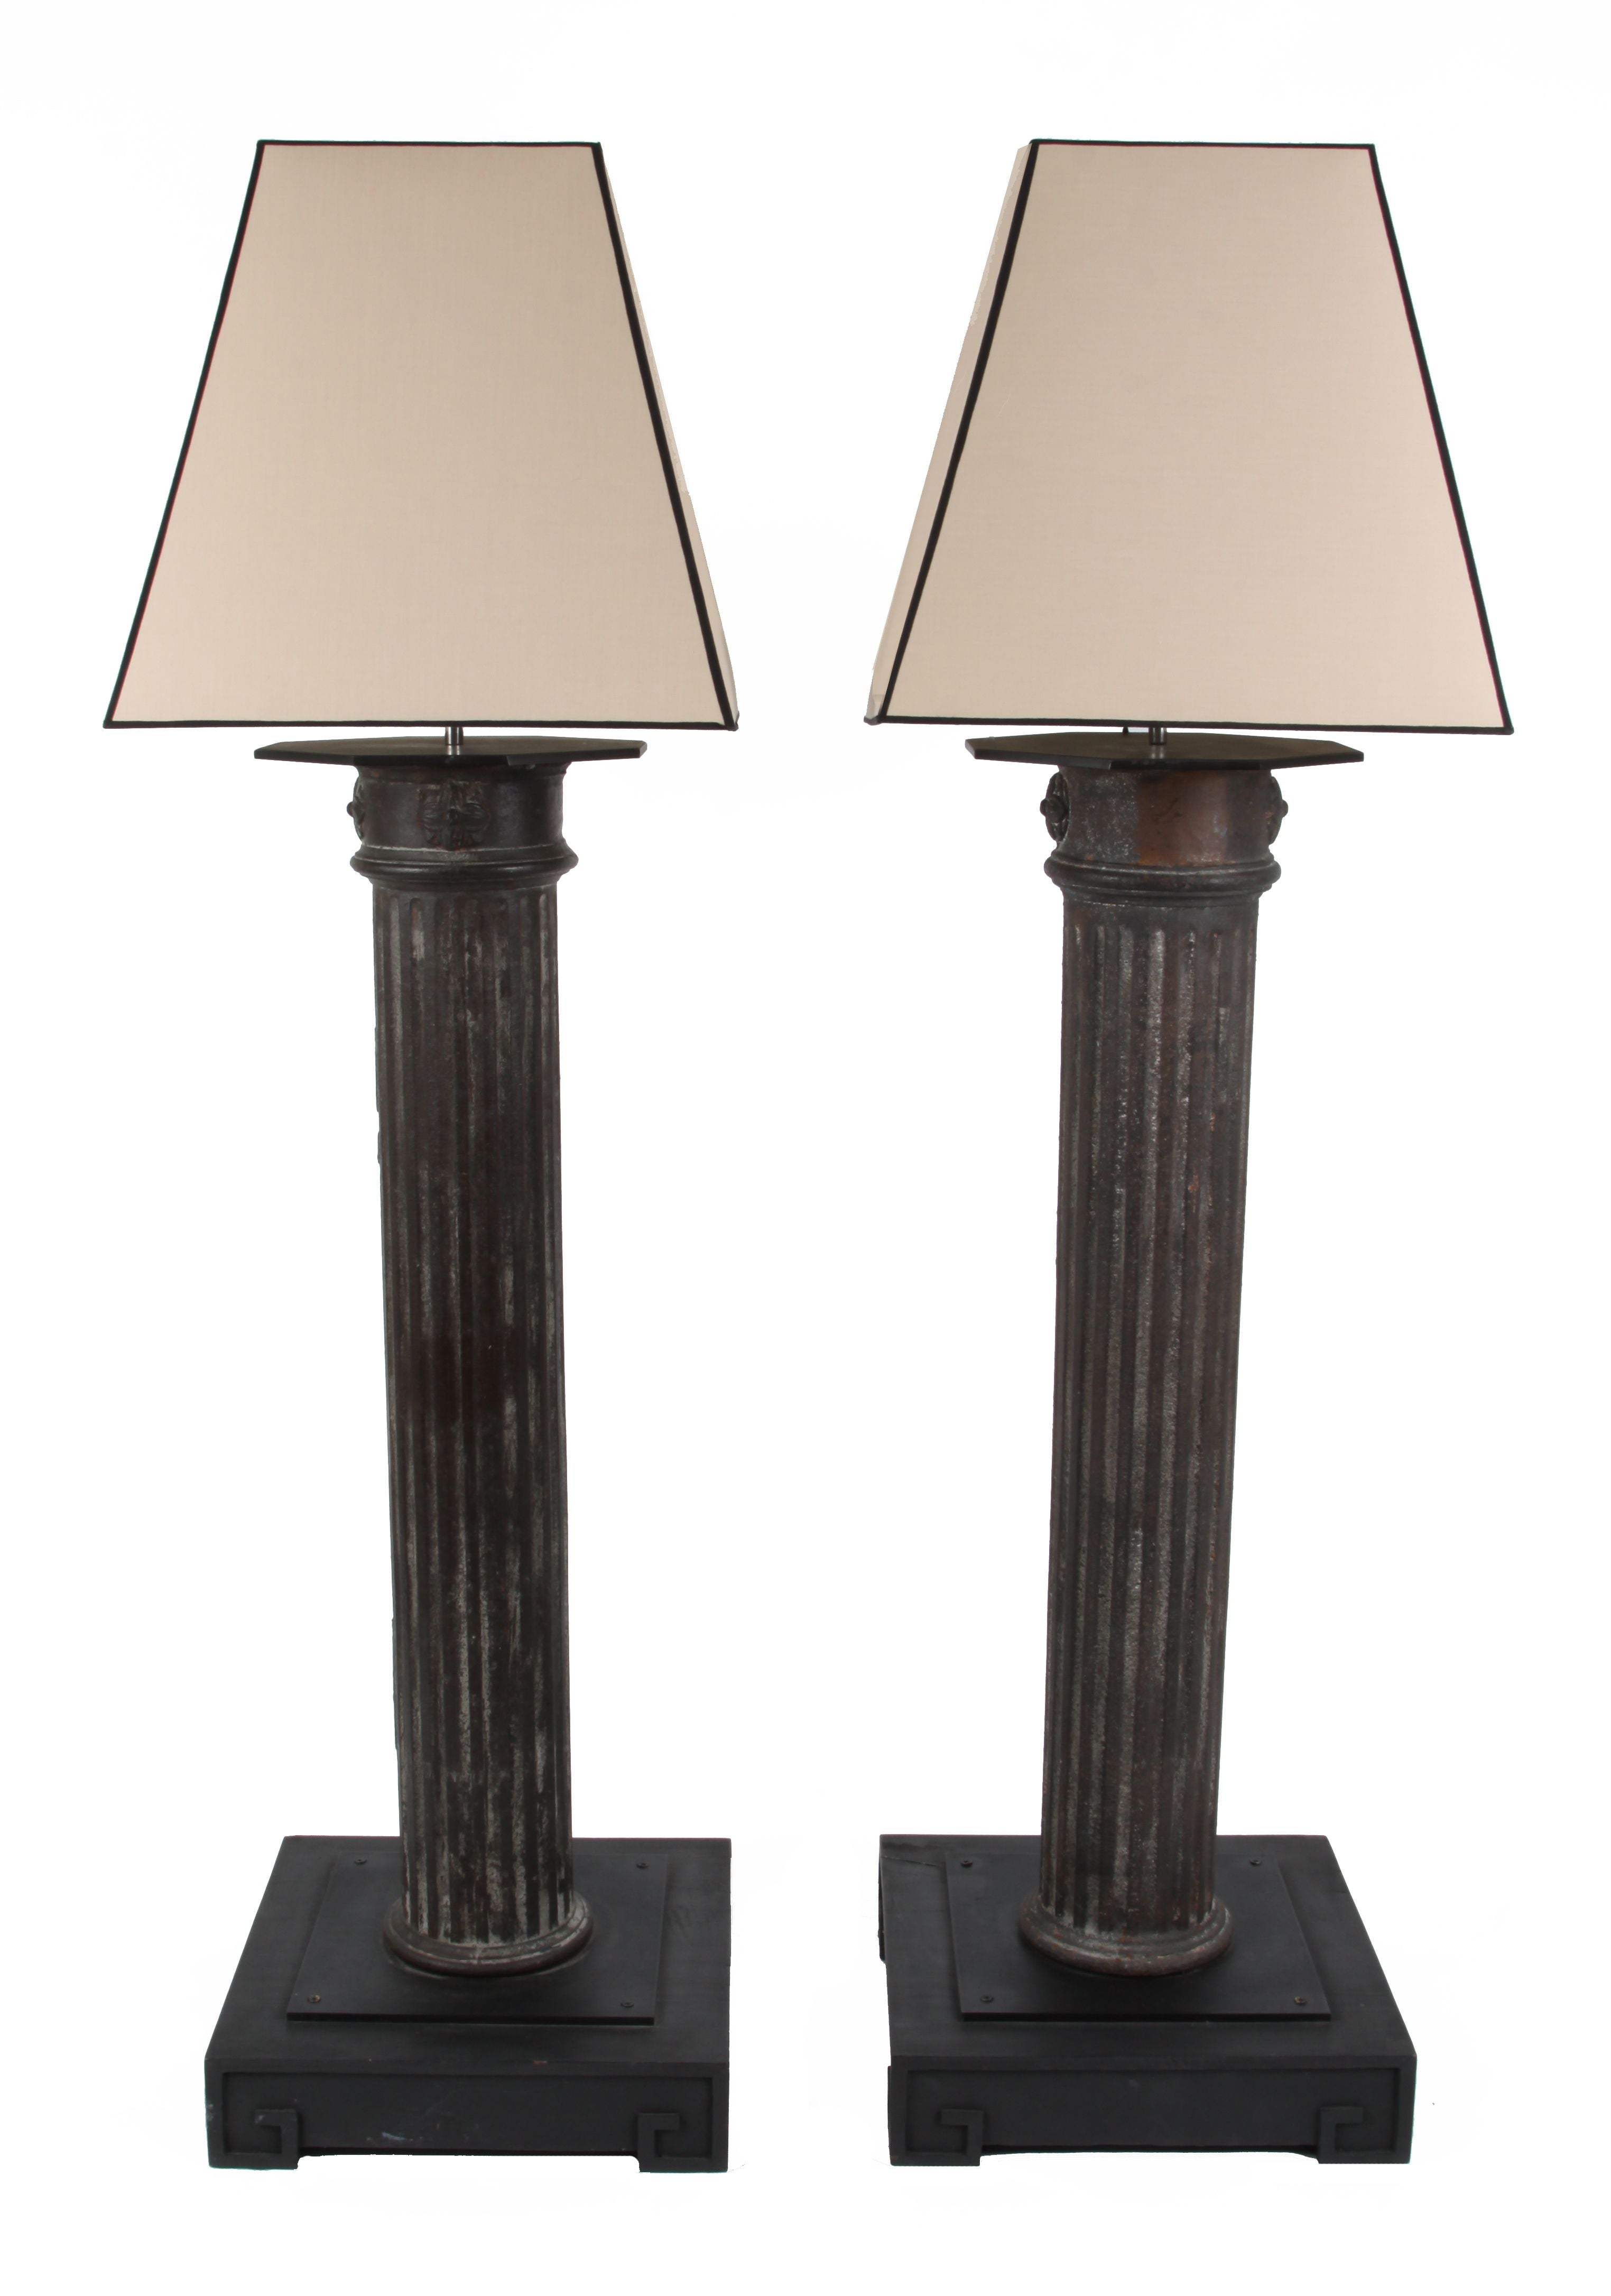 Antique French Lamp Post Floor Lamps A Pair Chairish